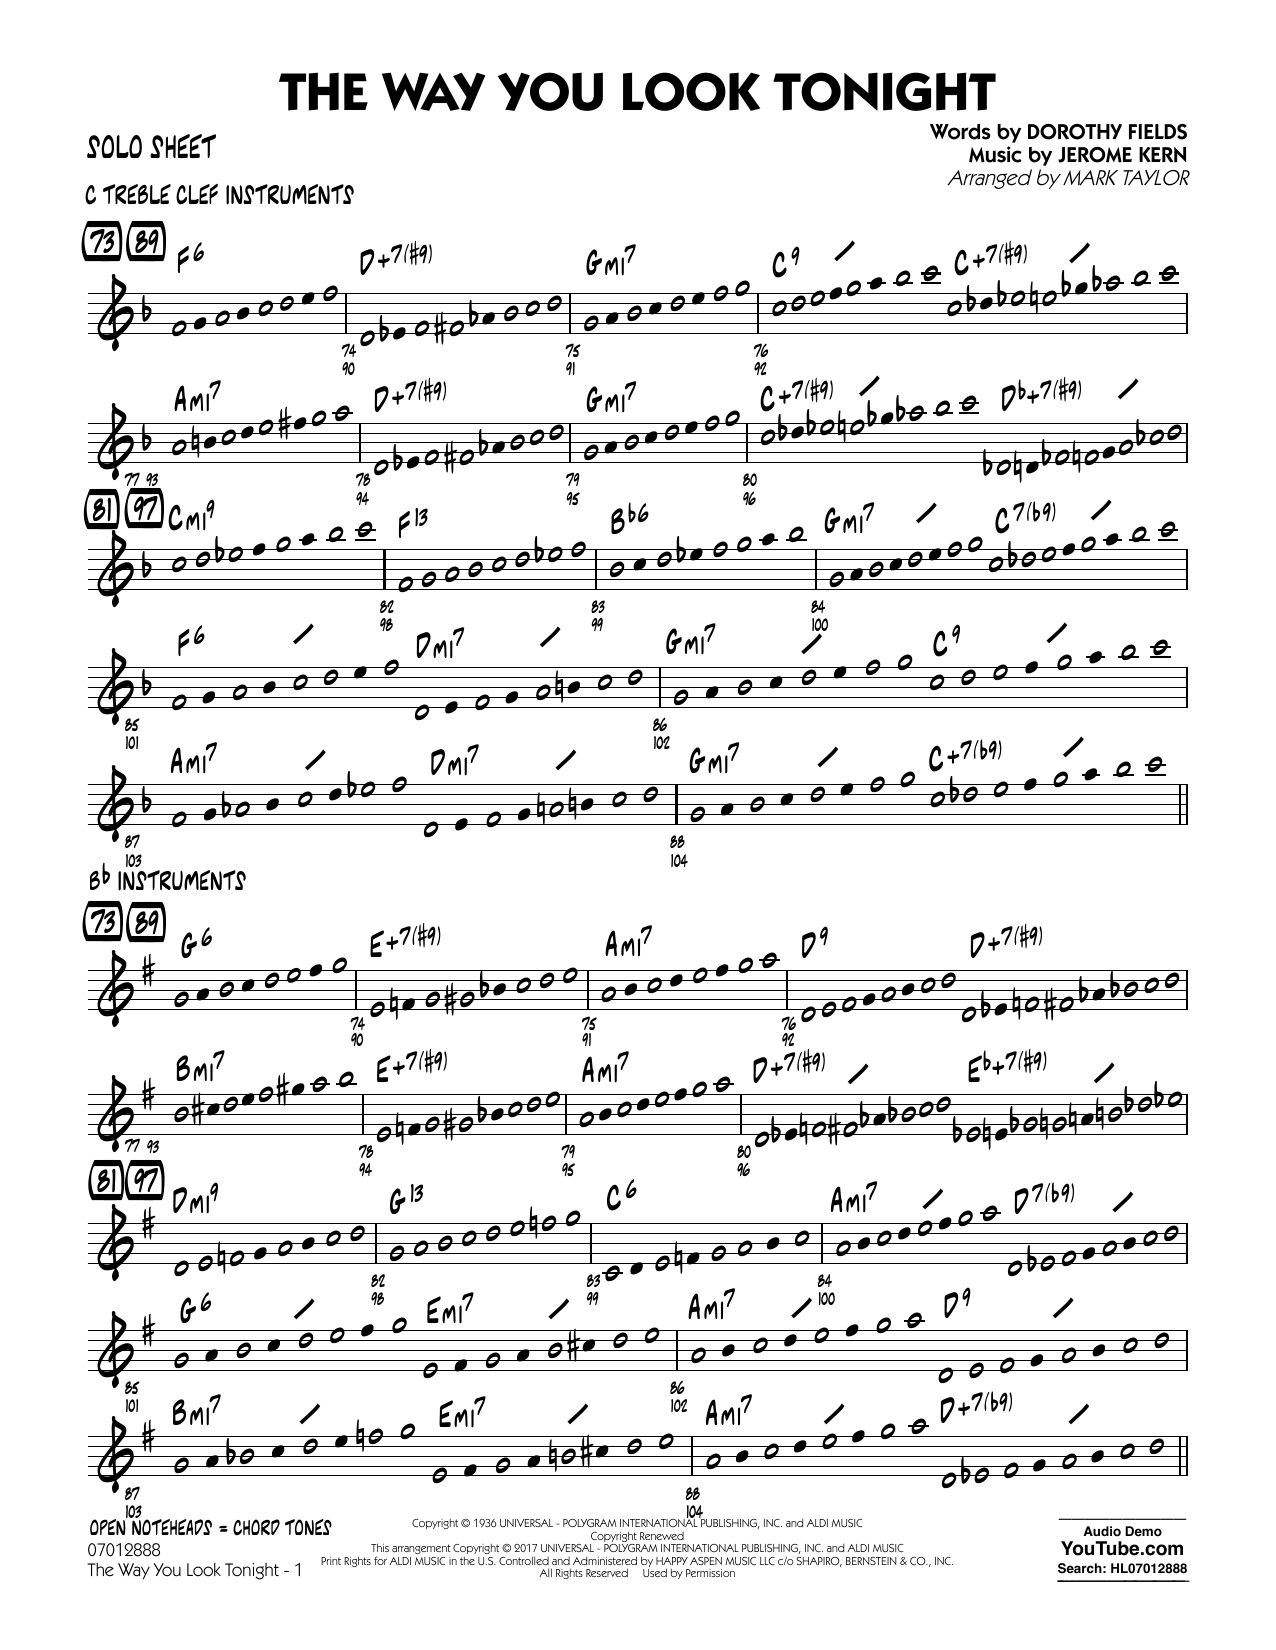 Jerome Kern - The Way You Look Tonight - Solo Sheet